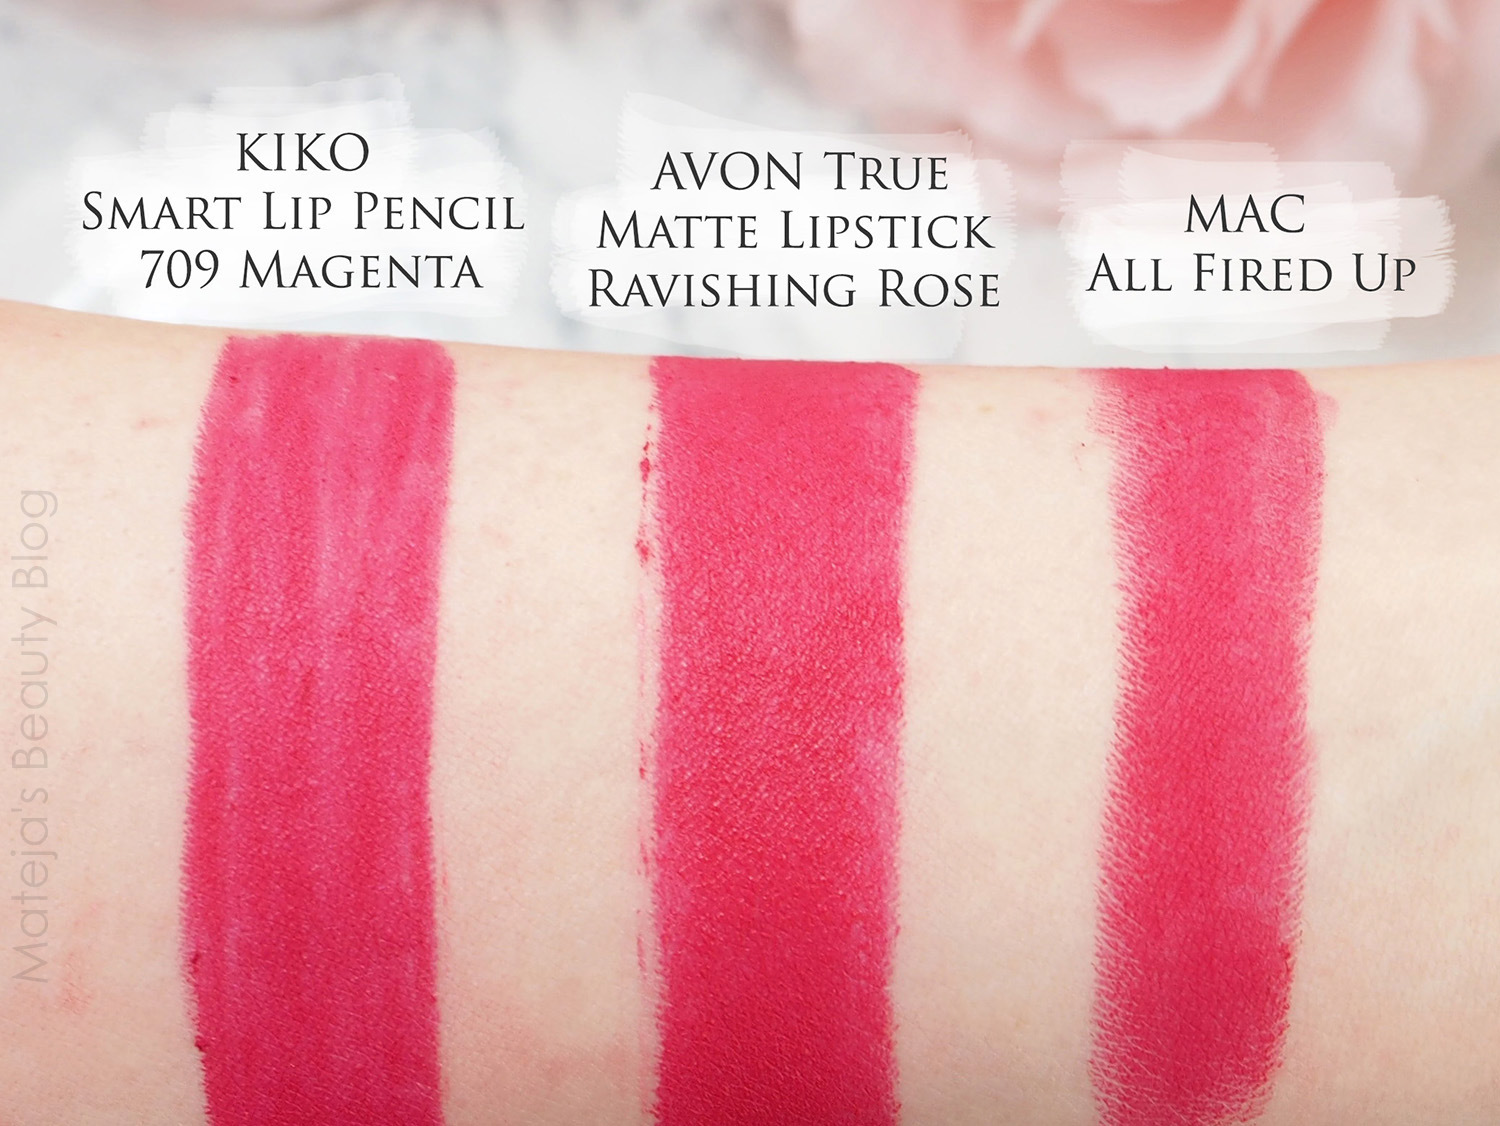 20 Mac lipsticks swatched plus their dupes - Mateja's Beauty